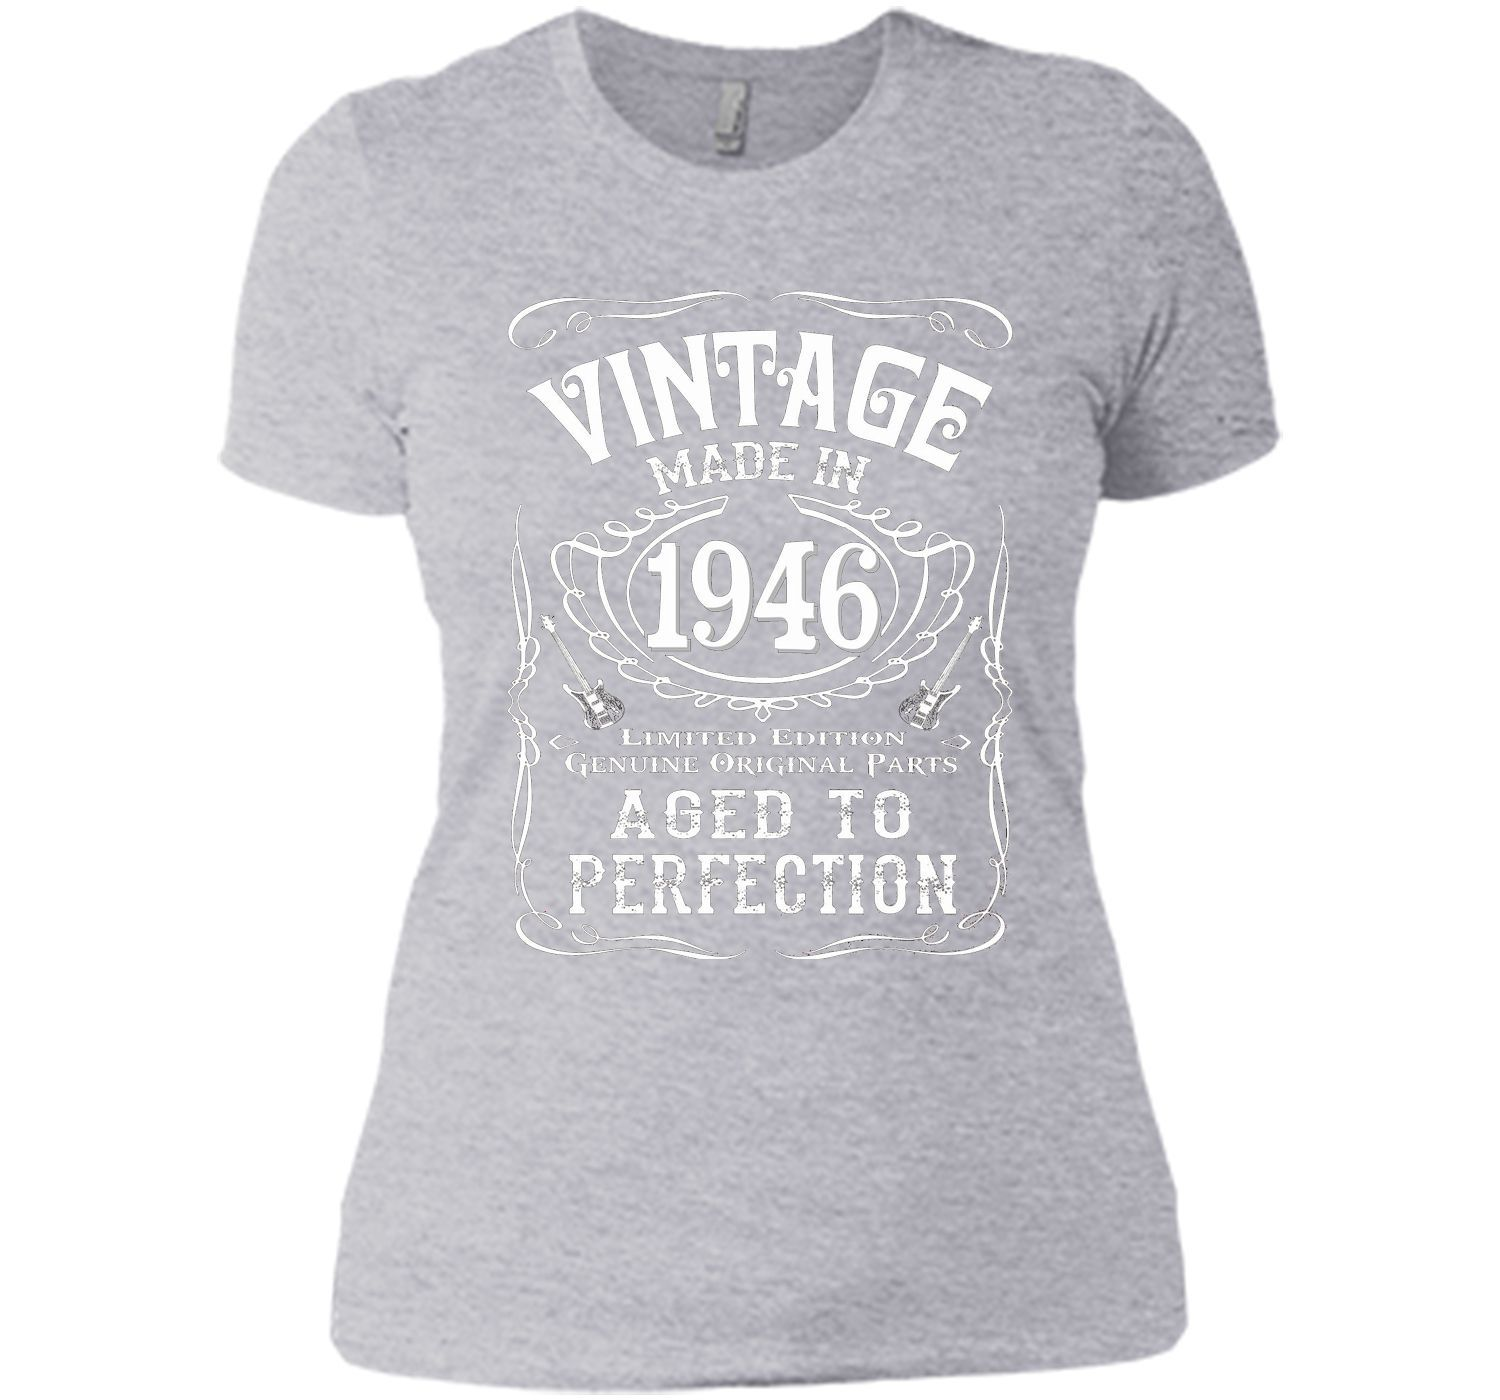 Vintage made in birthday gift idea t shirt products